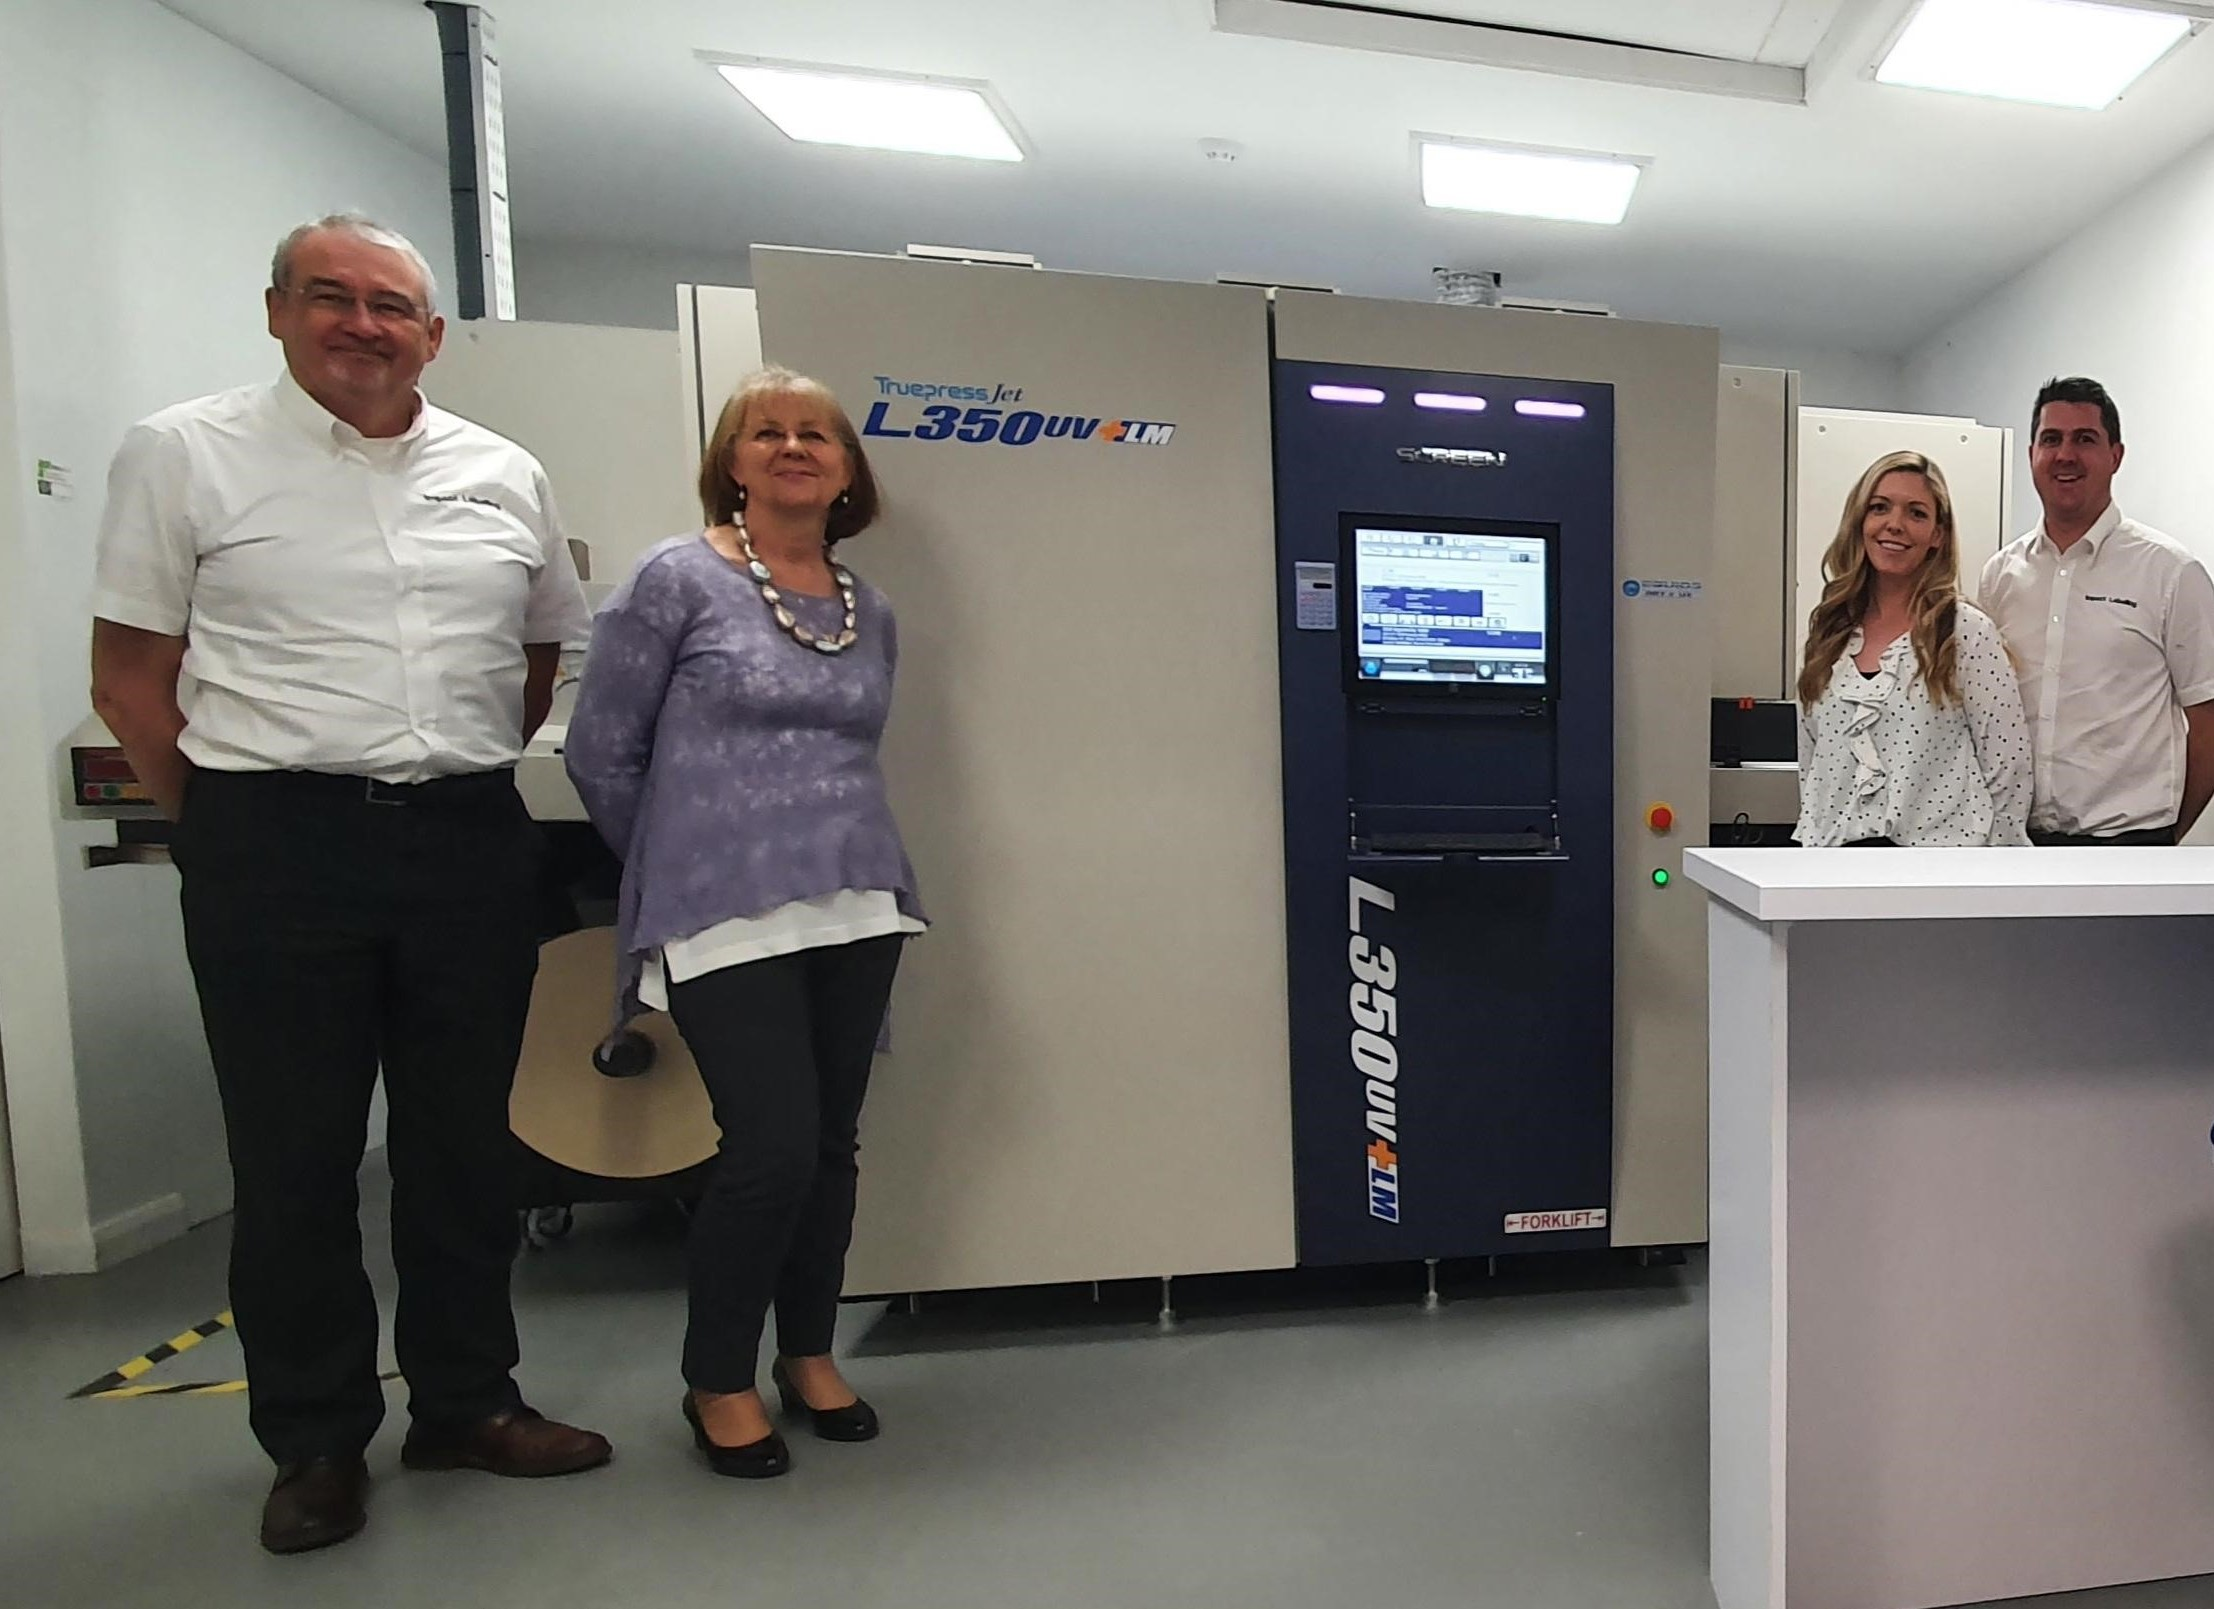 Image from Impact Labelling chooses Truepress L350UV+ LM for its speed and compliance with food and pharma safety requirements